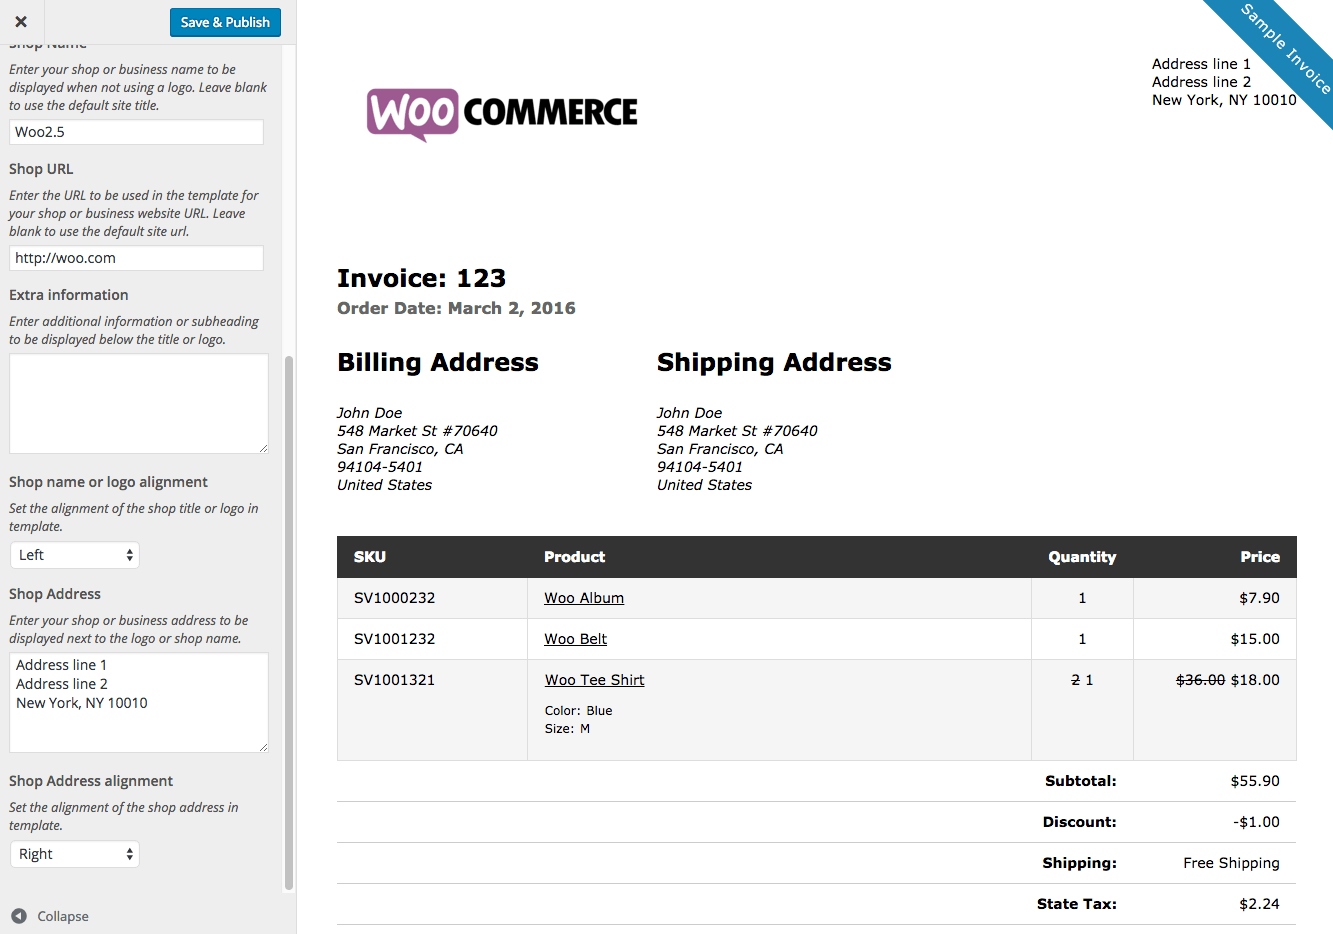 Usdgus  Sweet Print Invoices Amp Packing Lists  Woocommerce With Goodlooking Woocommerce Print Invoices  Packing Lists Customizer With Agreeable Tsp Receipt Paper Also Payment Receipt Voucher In Addition Sample Grocery Receipt And Or Number In Receipt As Well As Toys R Us No Receipt Return Policy Additionally Reliance Life Insurance Payment Receipt From Woocommercecom With Usdgus  Goodlooking Print Invoices Amp Packing Lists  Woocommerce With Agreeable Woocommerce Print Invoices  Packing Lists Customizer And Sweet Tsp Receipt Paper Also Payment Receipt Voucher In Addition Sample Grocery Receipt From Woocommercecom